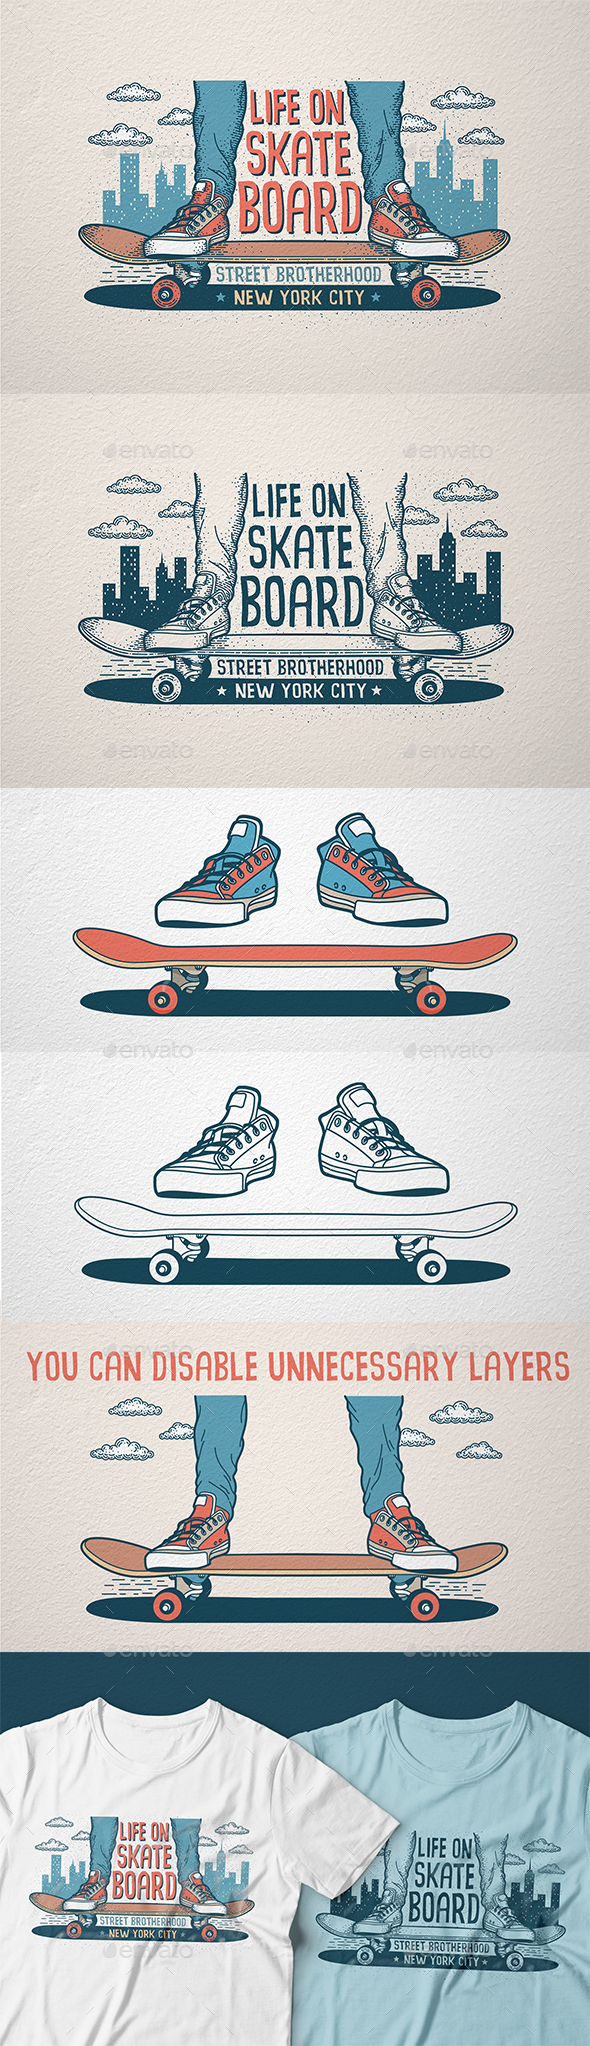 Skateboarding Print - Sports/Activity Conceptual